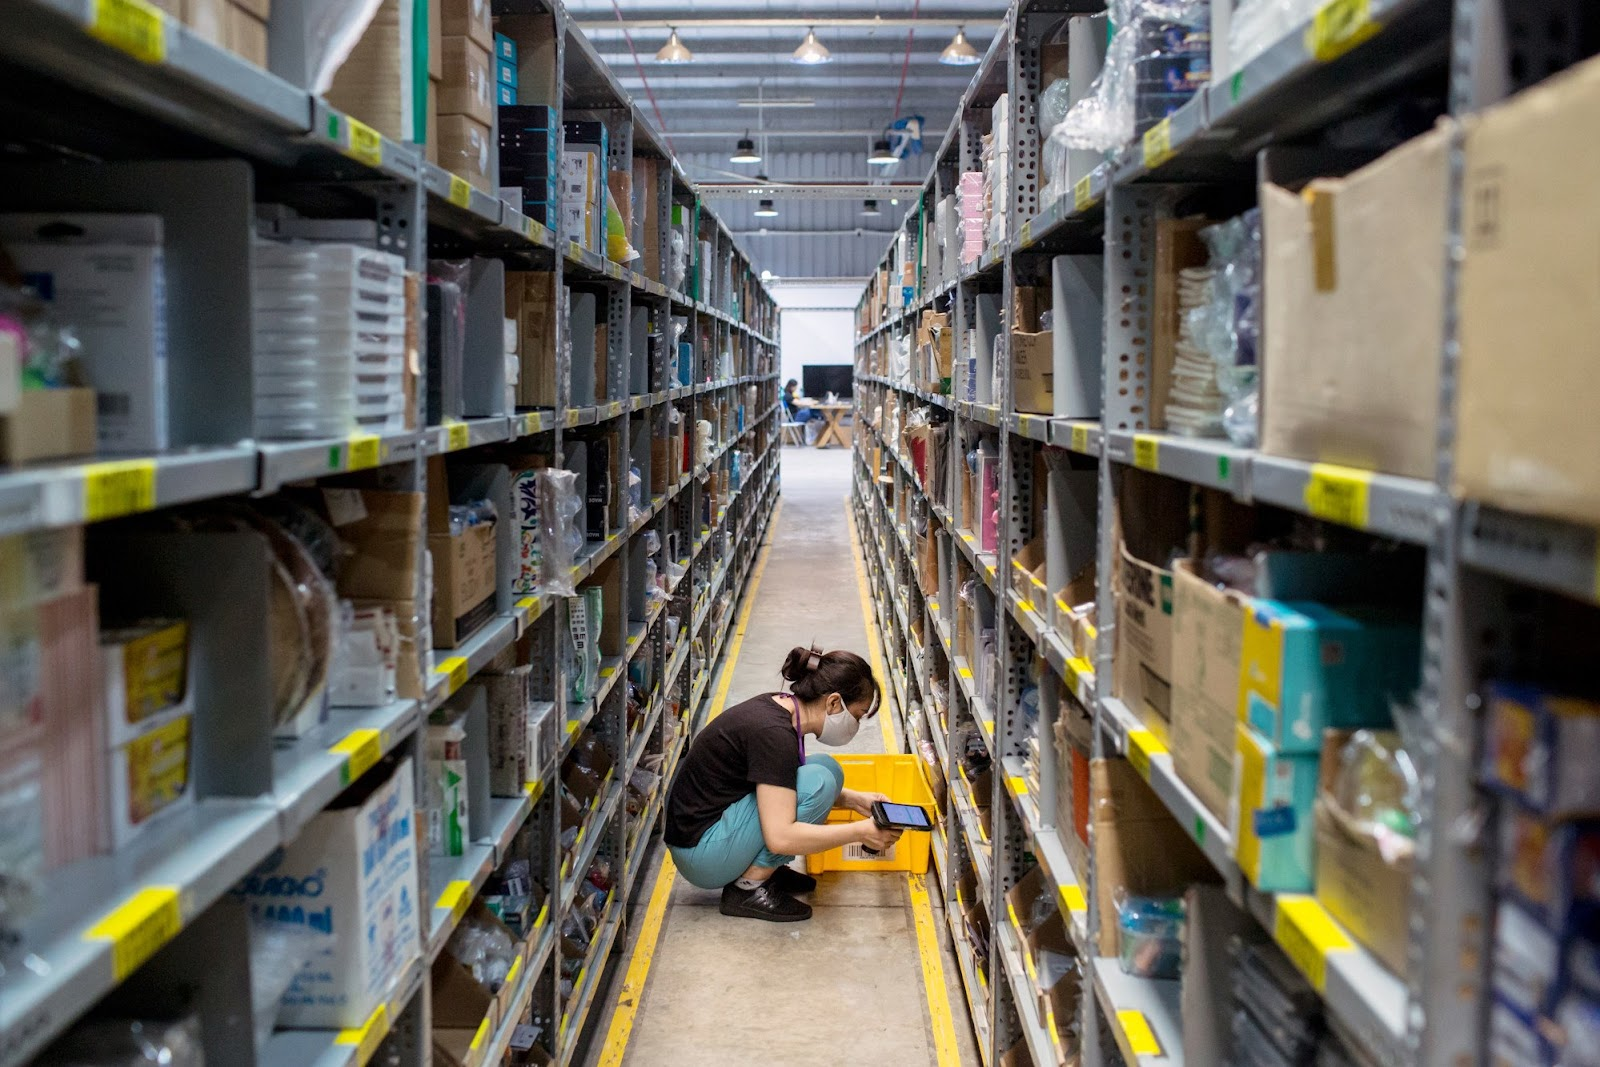 A worker scans and checks an item on the shelves of a Tiki.vn warehouse in Ho Chi Minh City, Vietnam, on May 24. Photo: Bloomberg